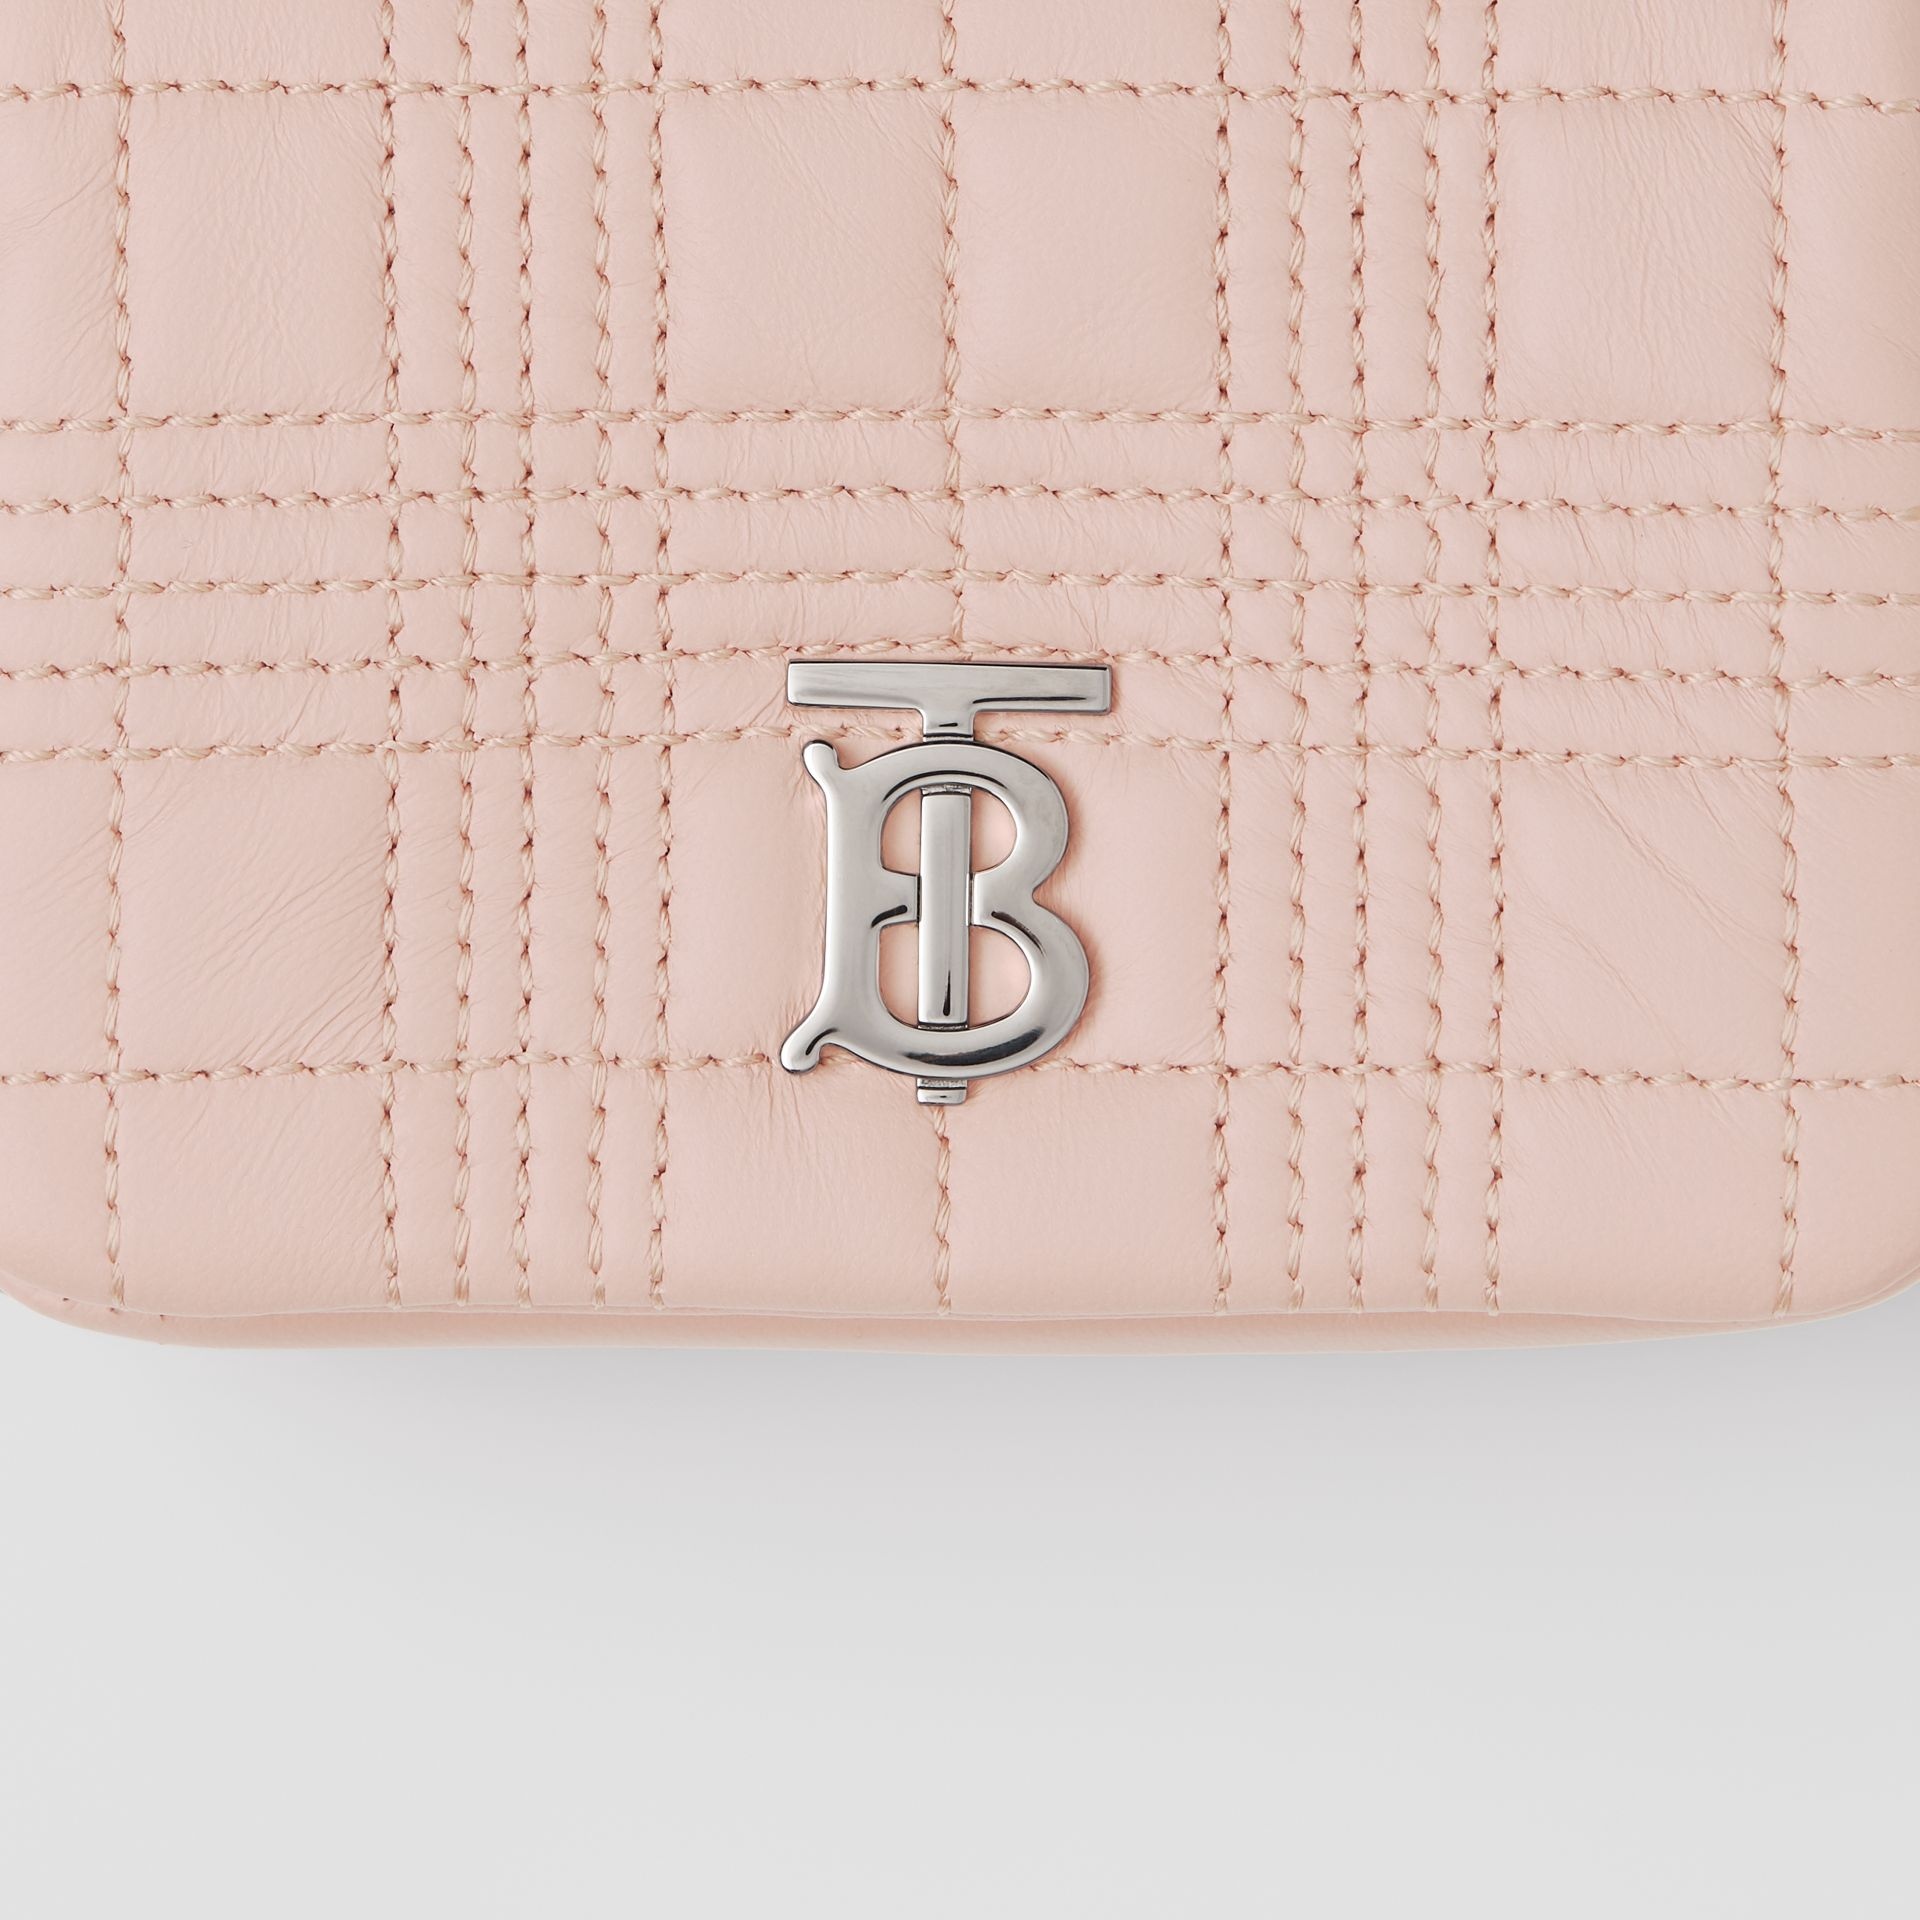 Micro Quilted Lambskin Lola Bag in Blush Pink - Women | Burberry - gallery image 1